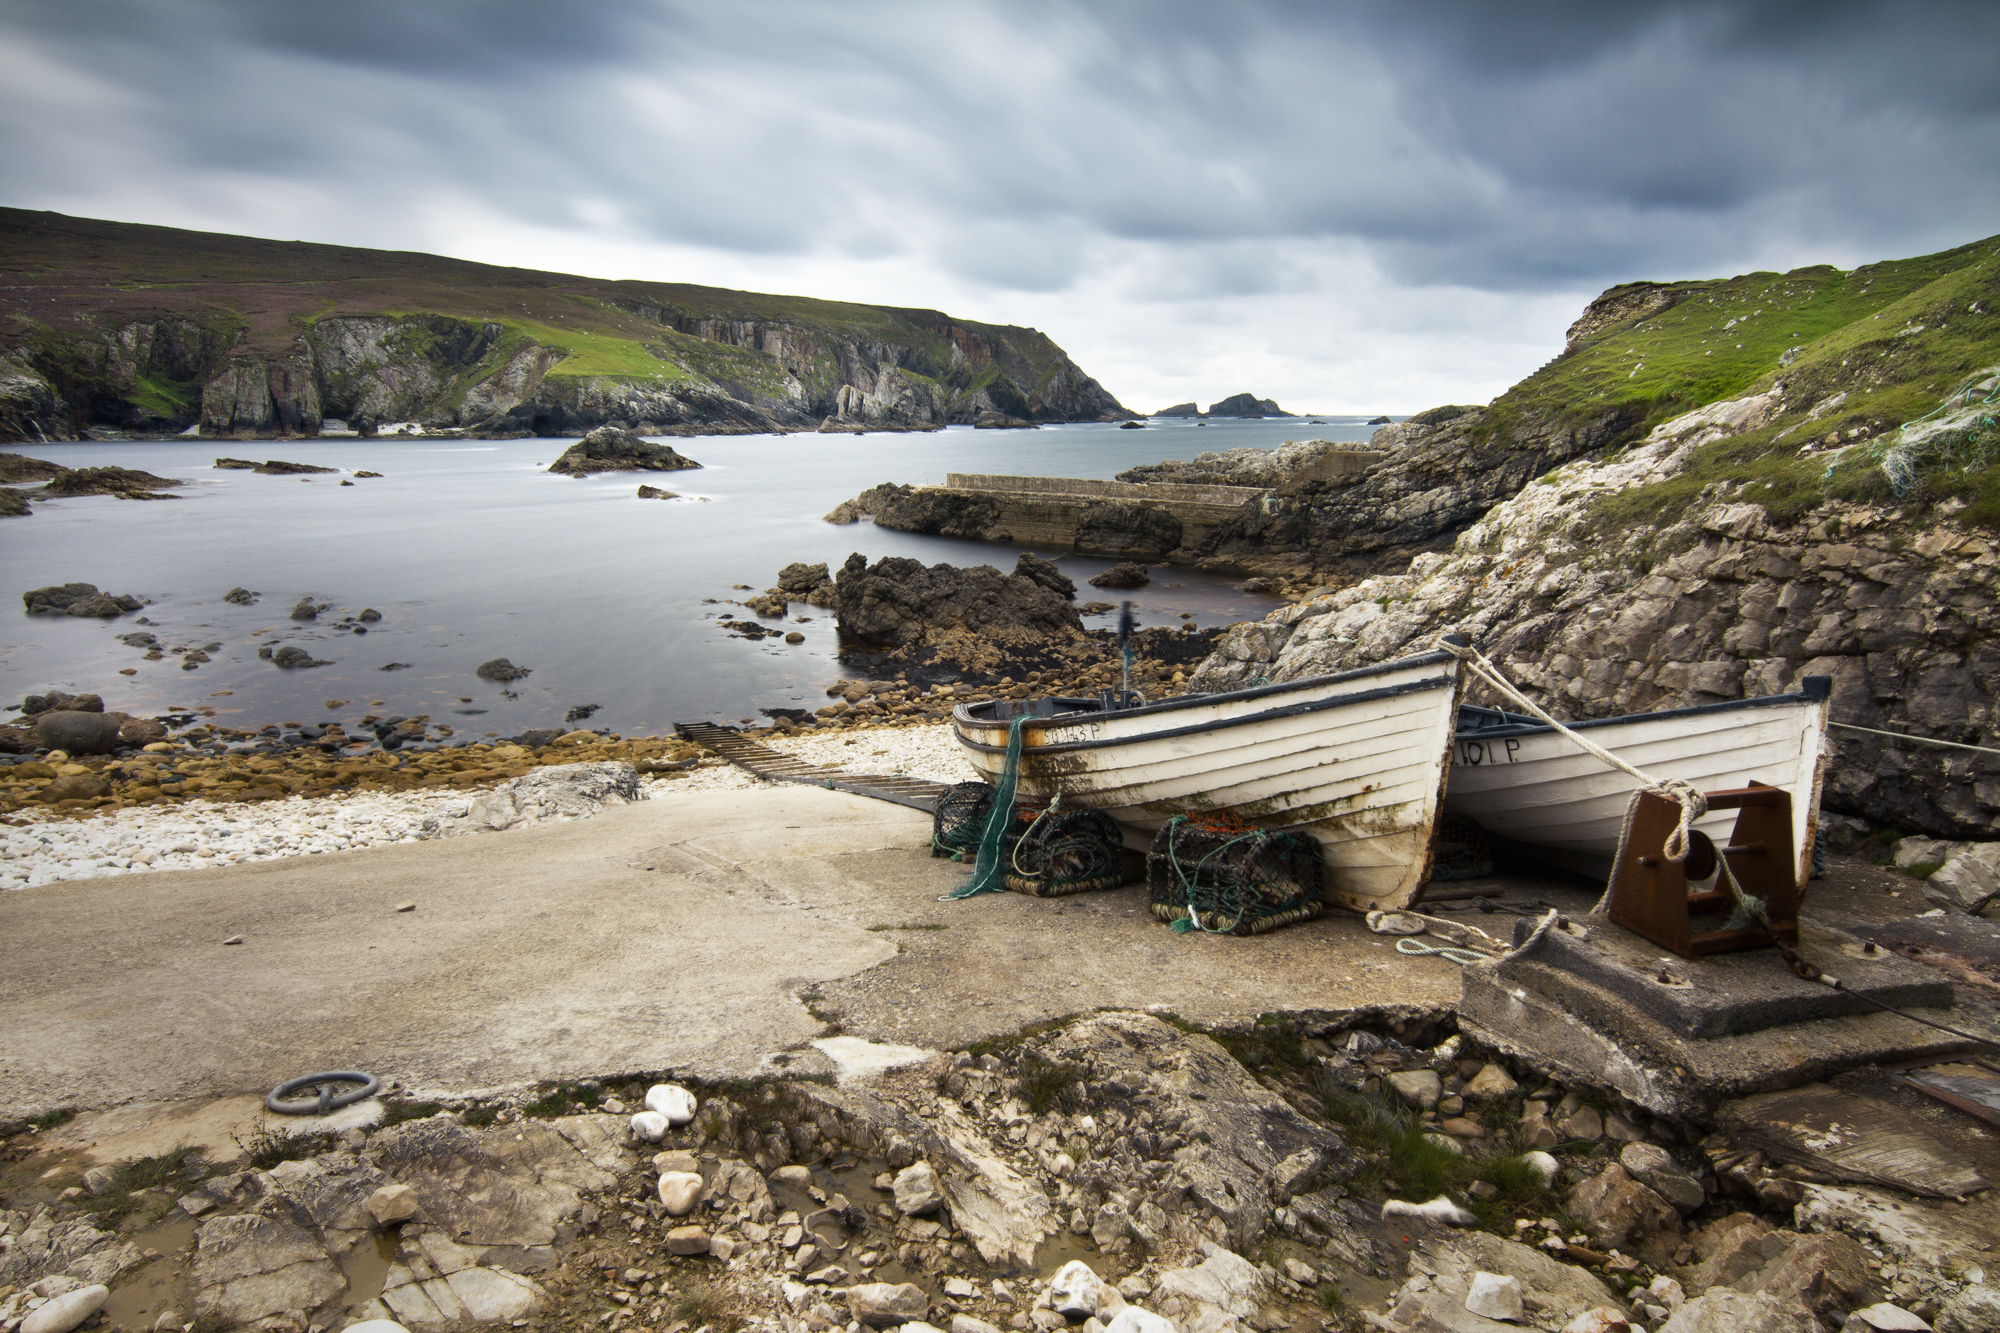 Port, co. Donegal, Ireland